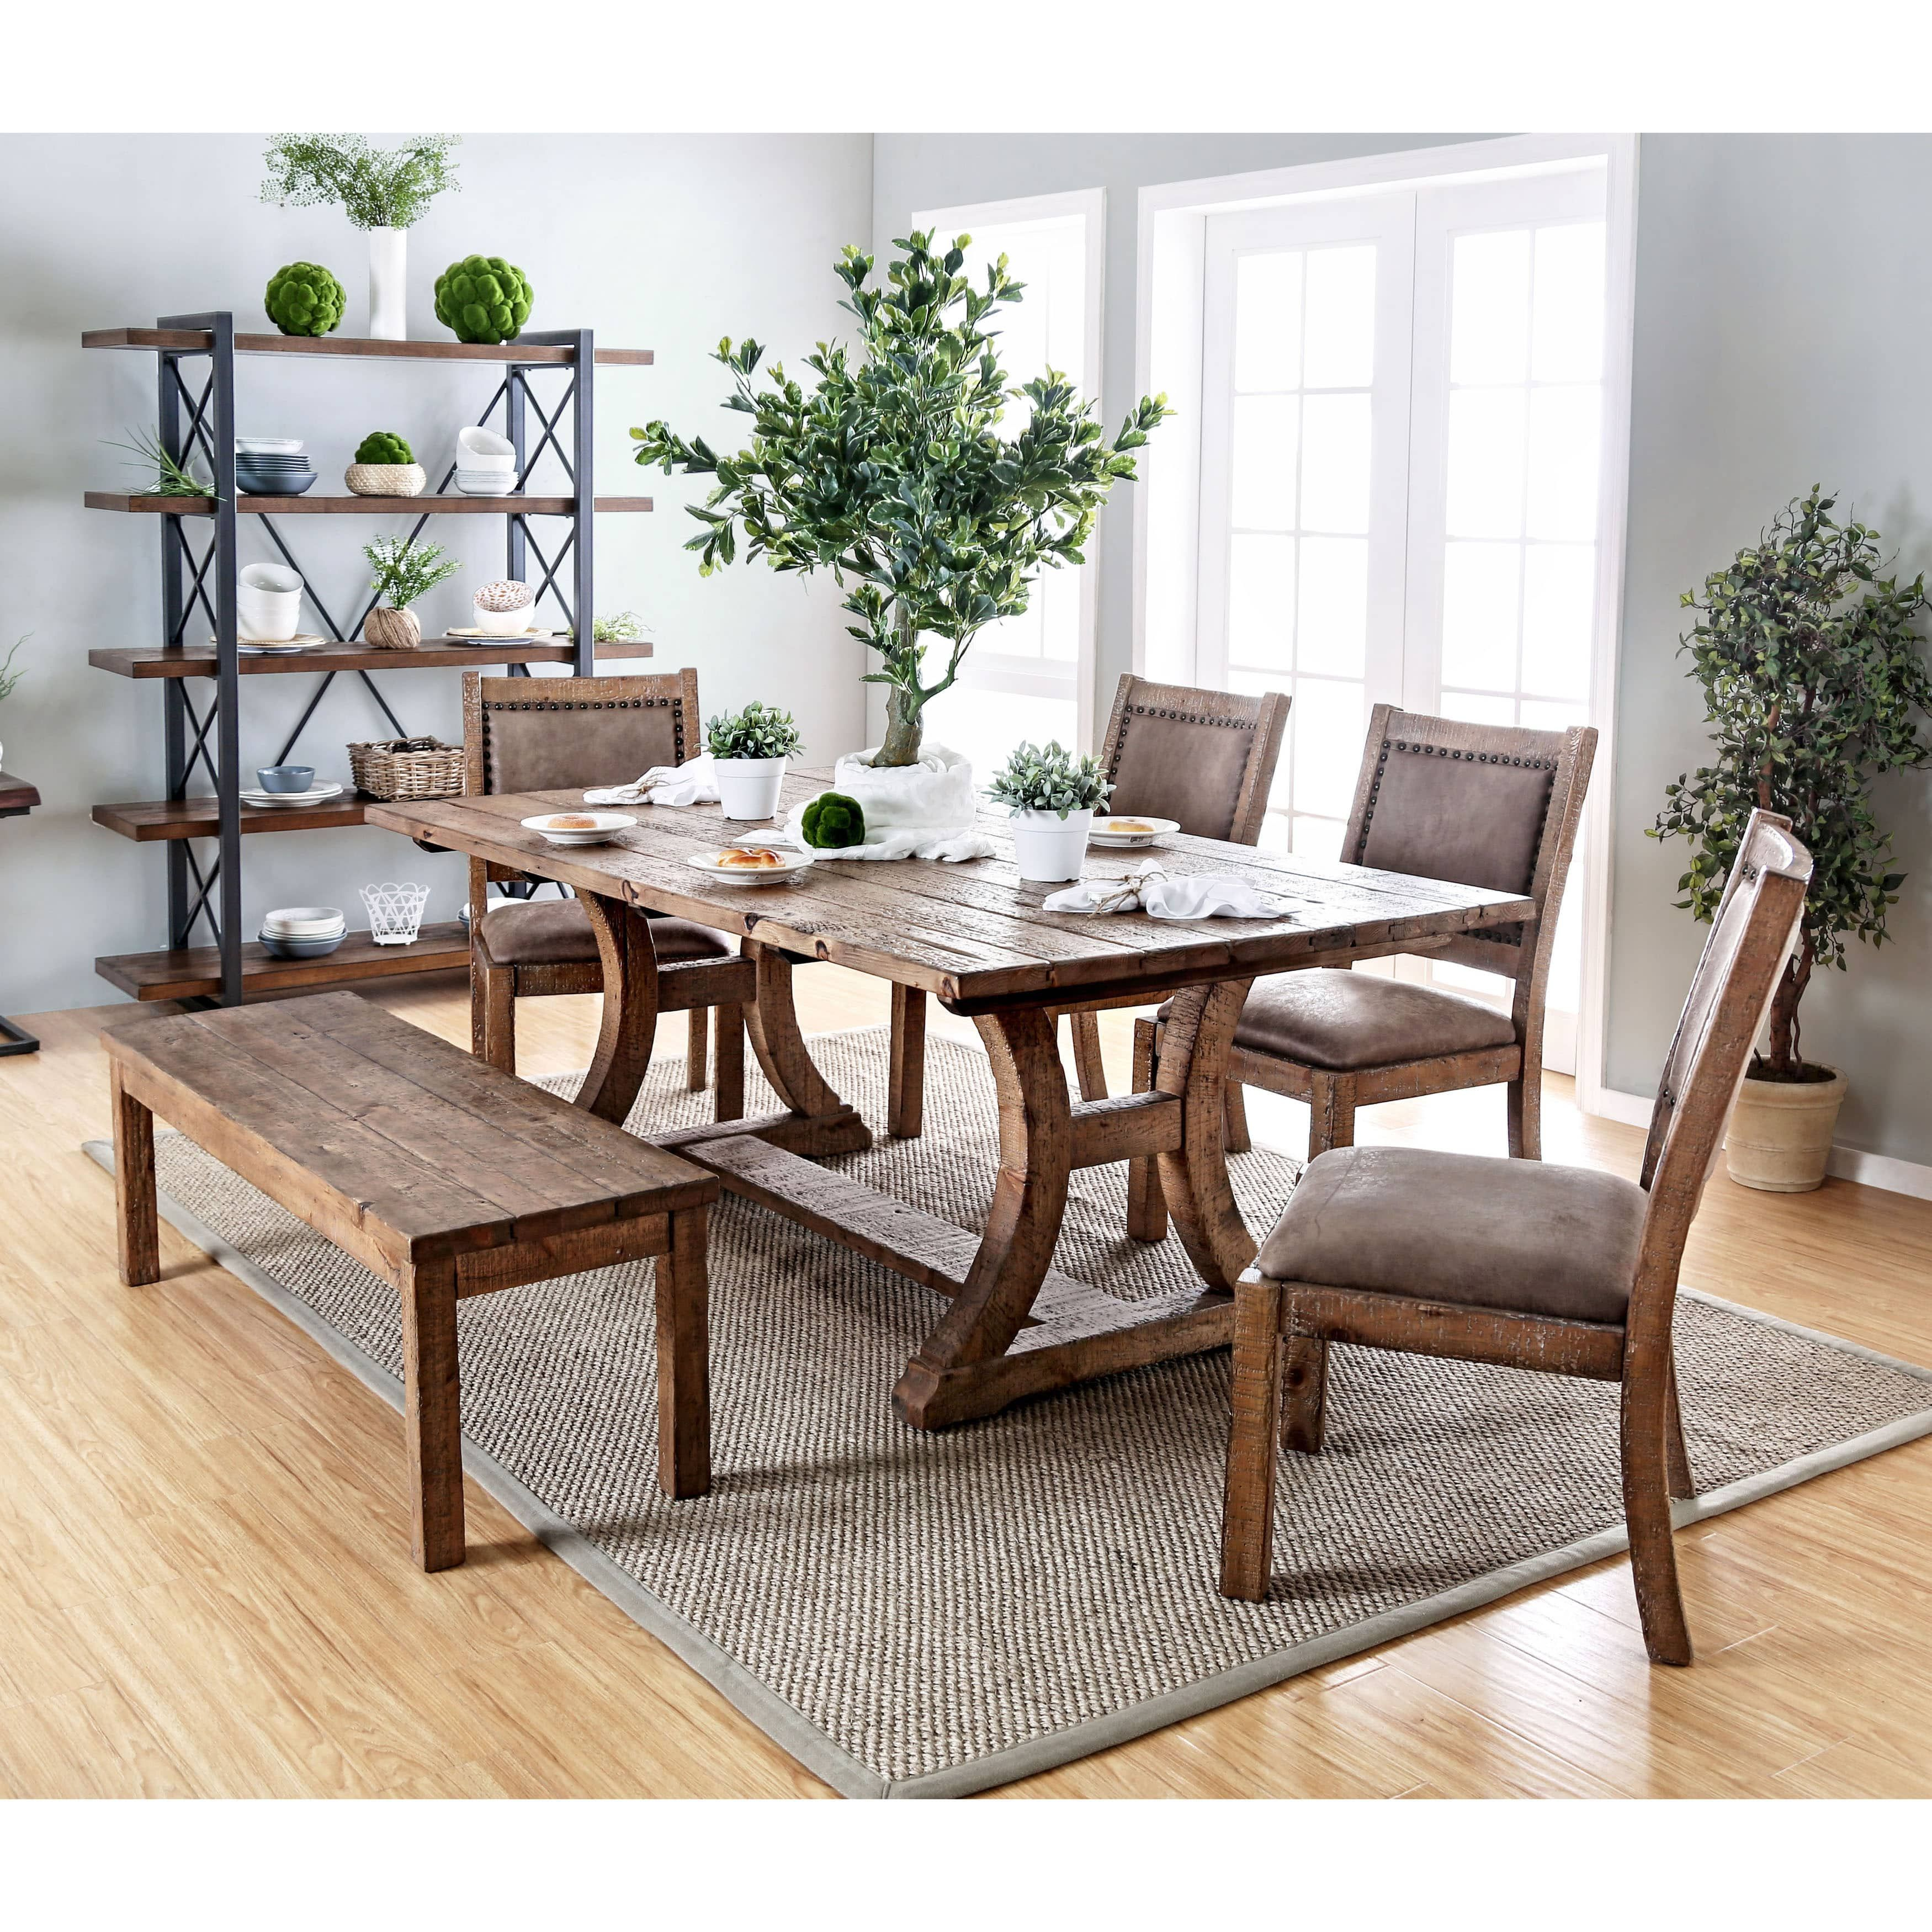 Furniture Of America Matthias Industrial Rustic Pine Dining Table Prepossessing Pine Dining Room Table And Chairs Review